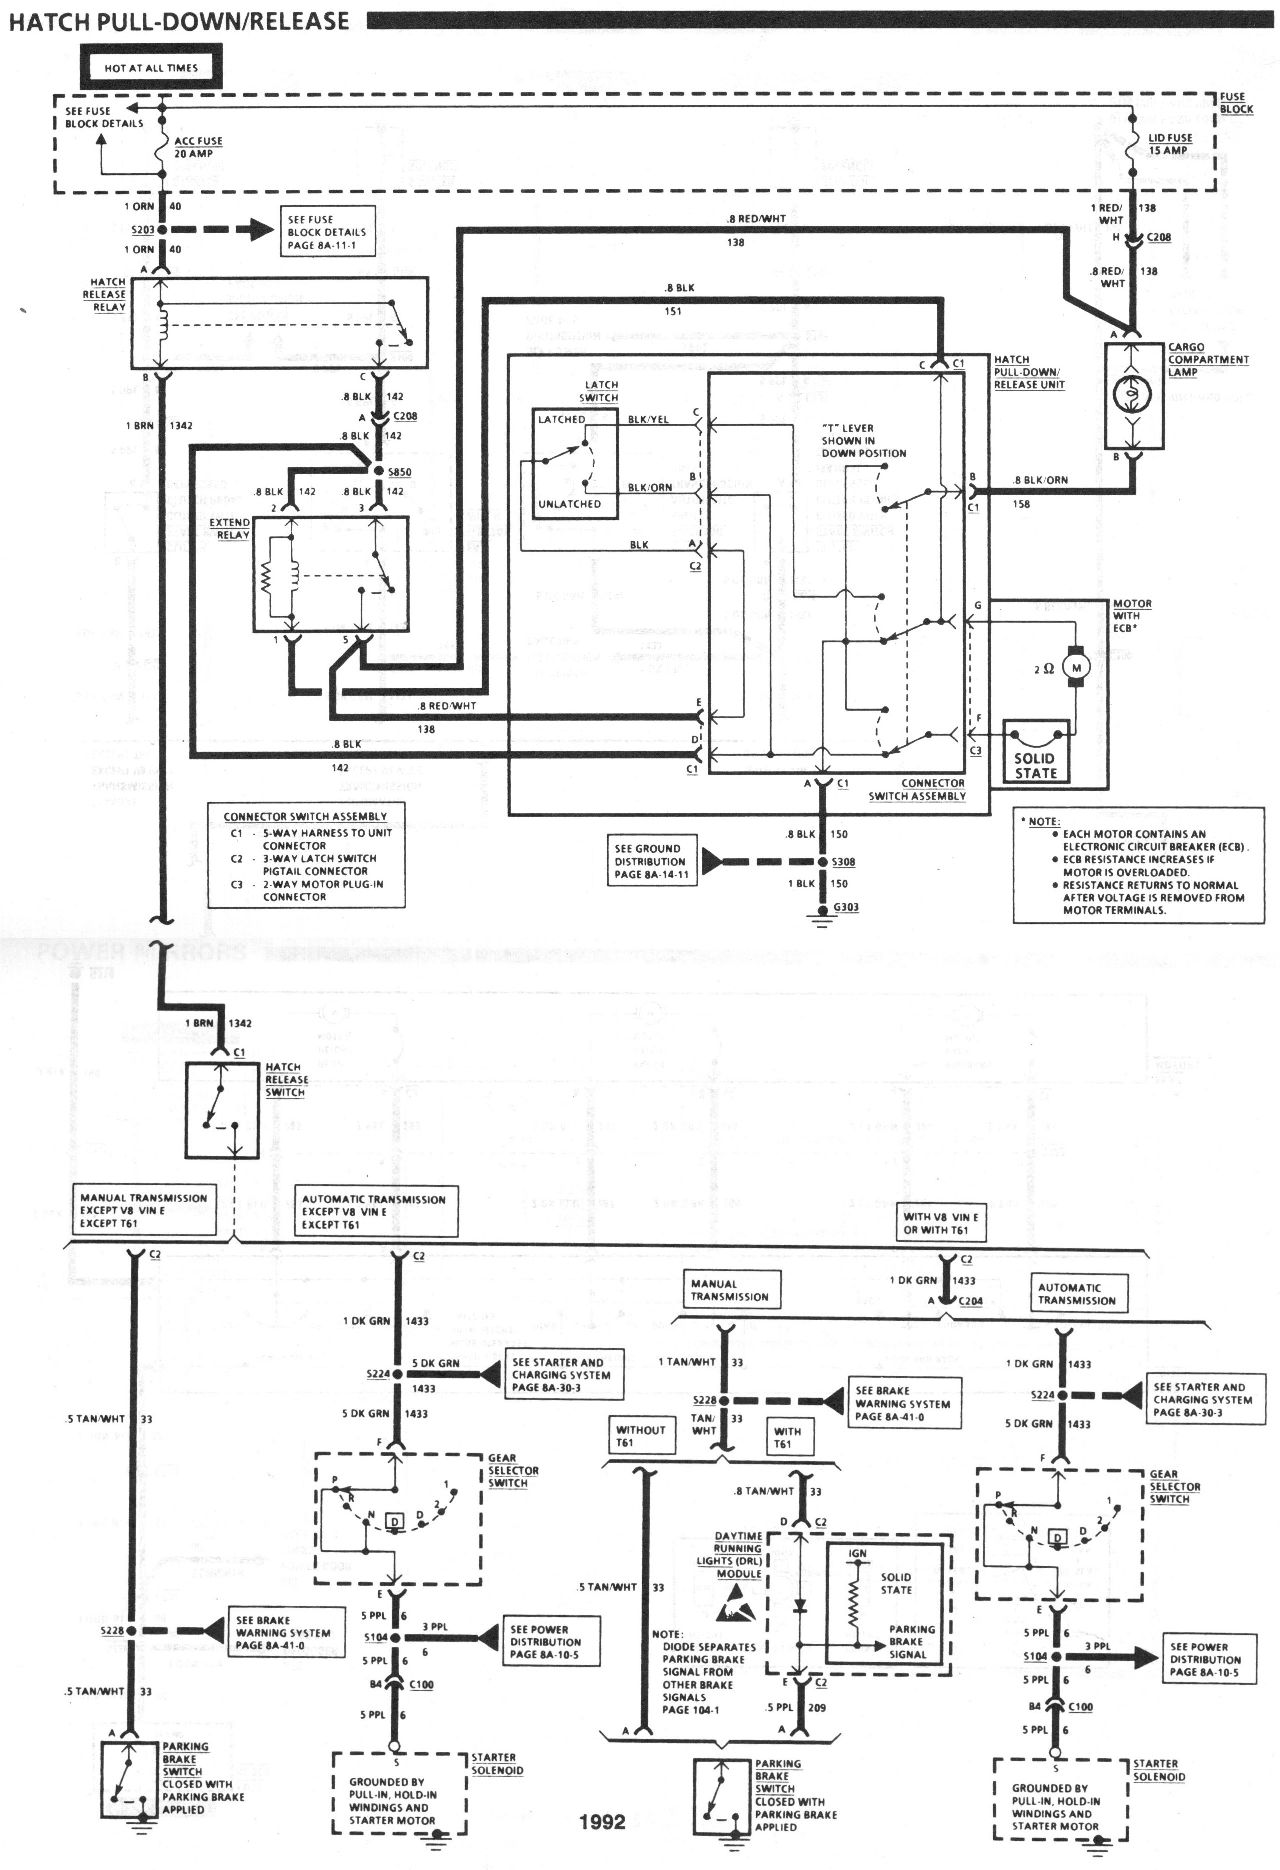 Third Generation Camaro Wiring Diagram Guide And Troubleshooting 1992 Fuse Block Schematic Gen Library Rh 83 Bloxhuette De 2nd